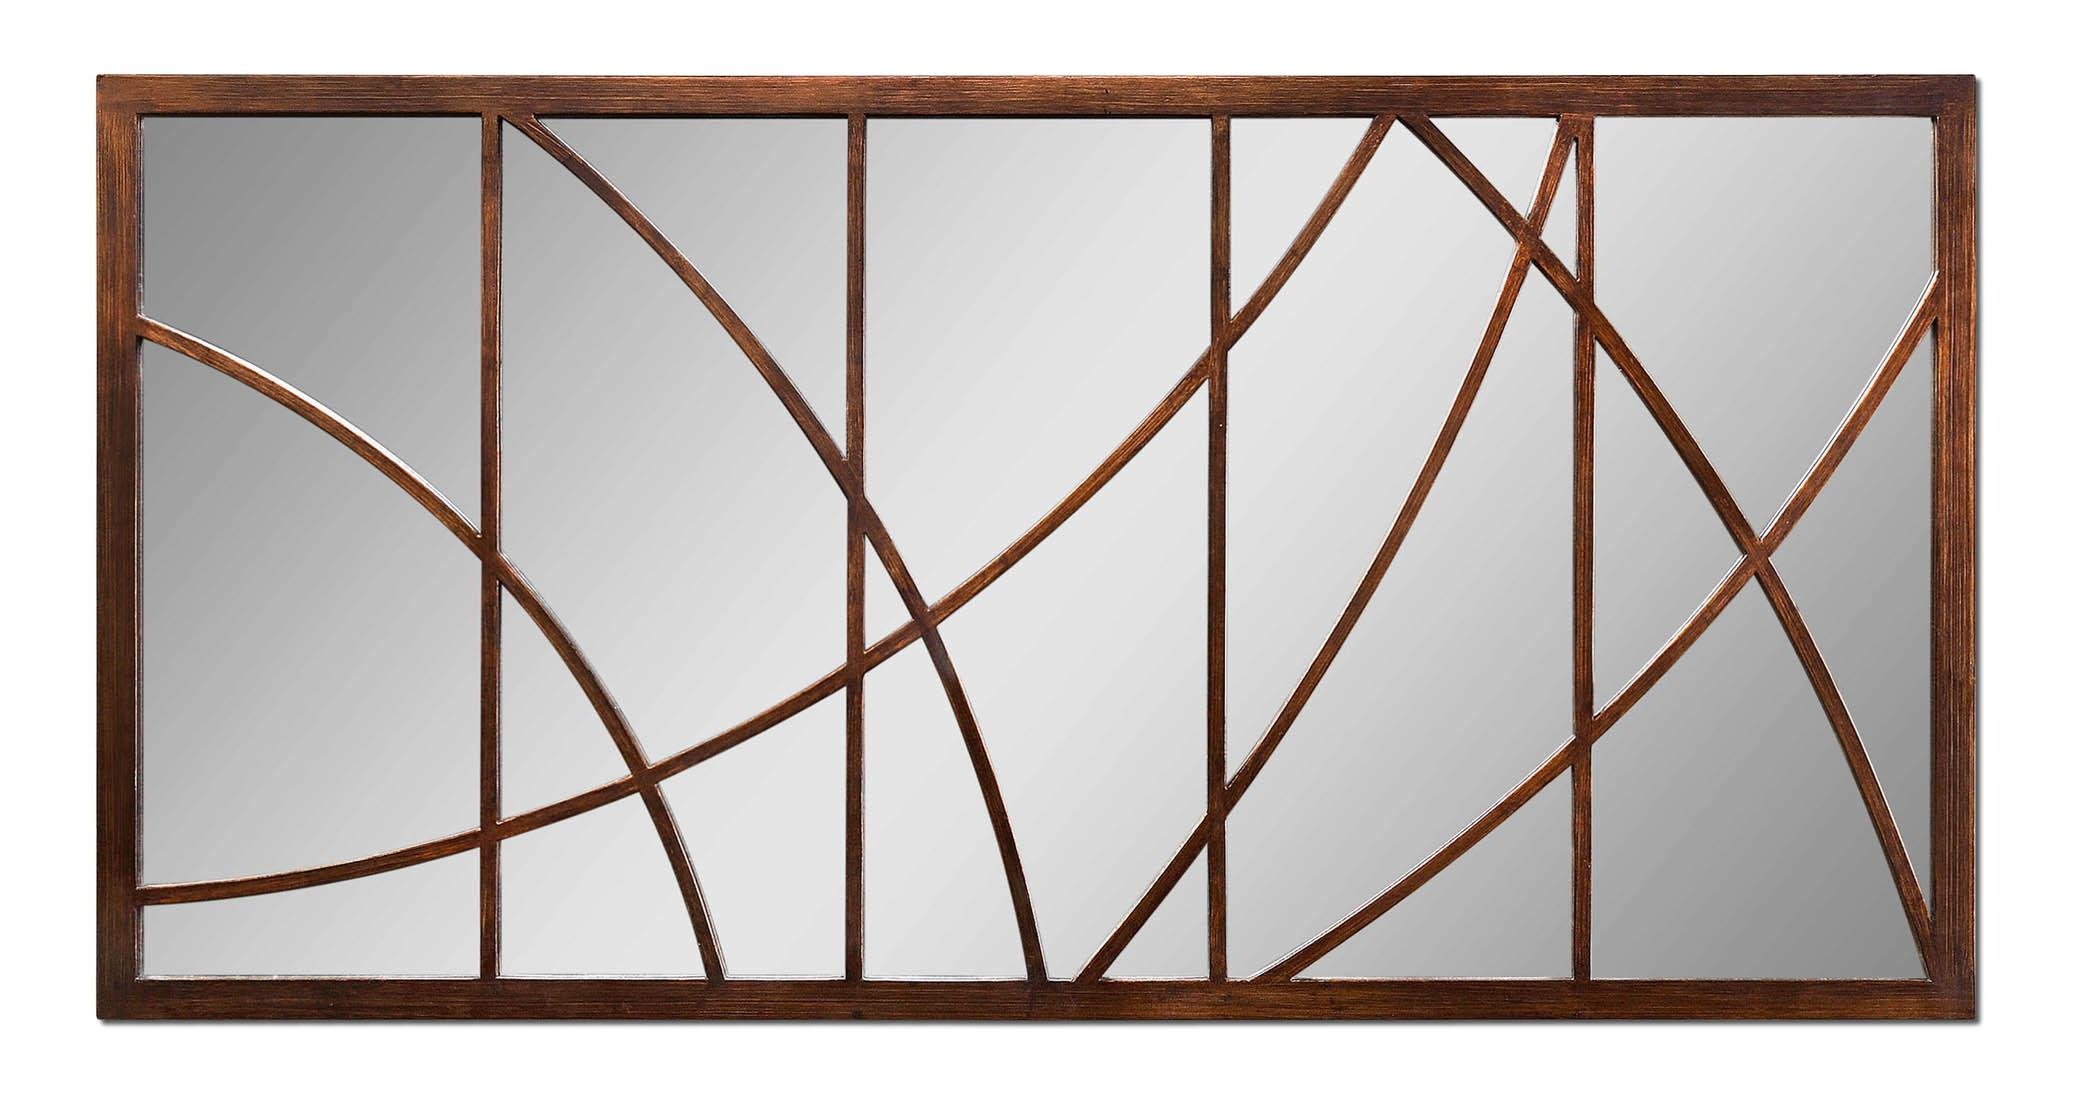 Uttermost Mirrors Loudon Mirror - Item Number: 14530